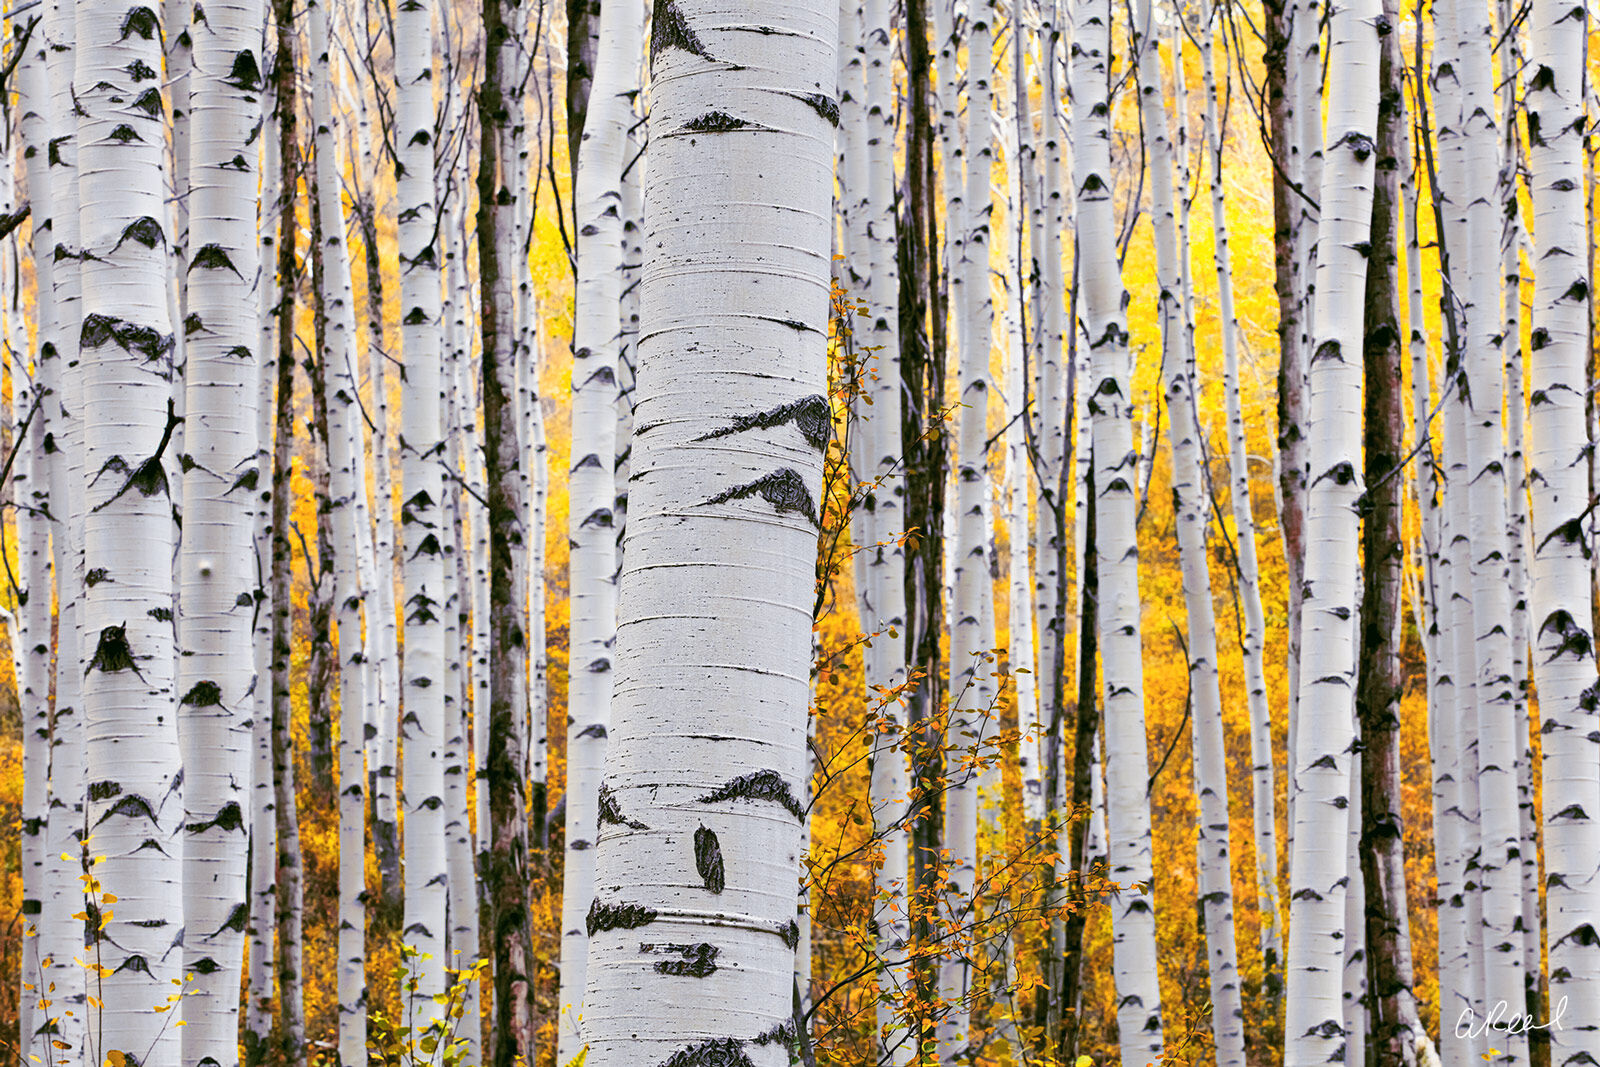 Aspen Tree, Colorado, Telluride, Lemon, Twist, Fine Art, Limited Edition, Trunk, Forest, Roots,, photo